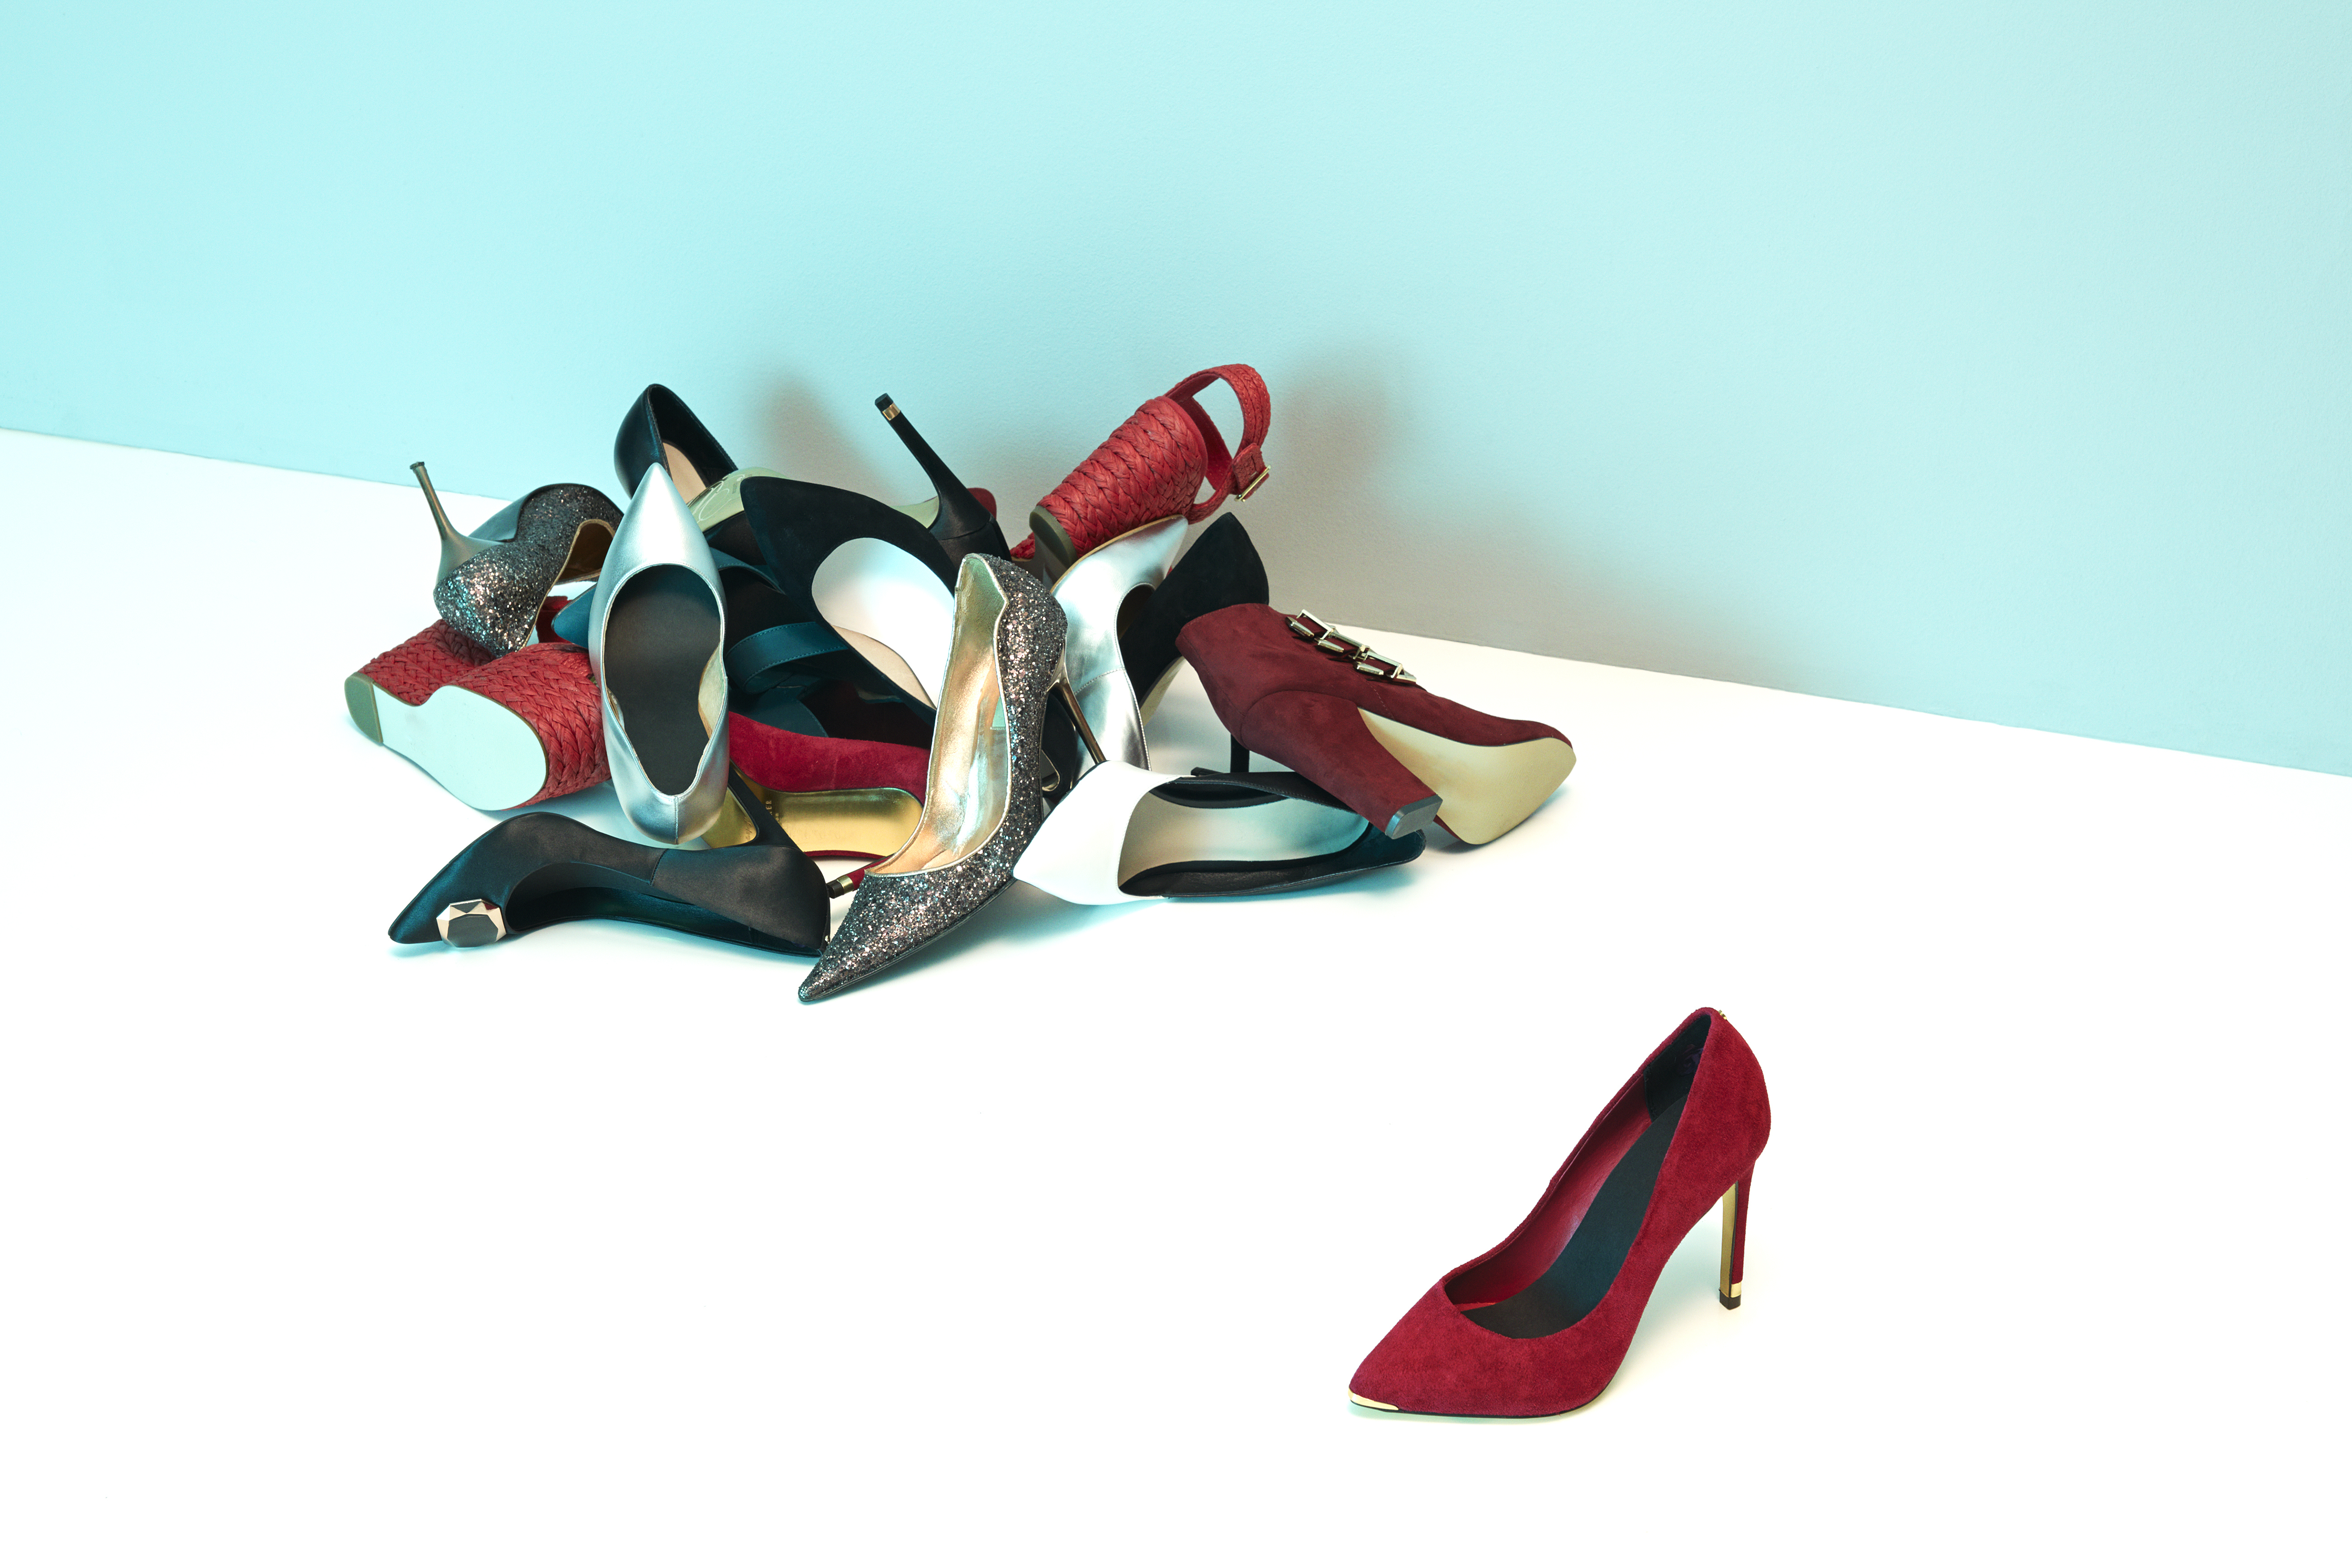 Assorted ladies high heeled shoes